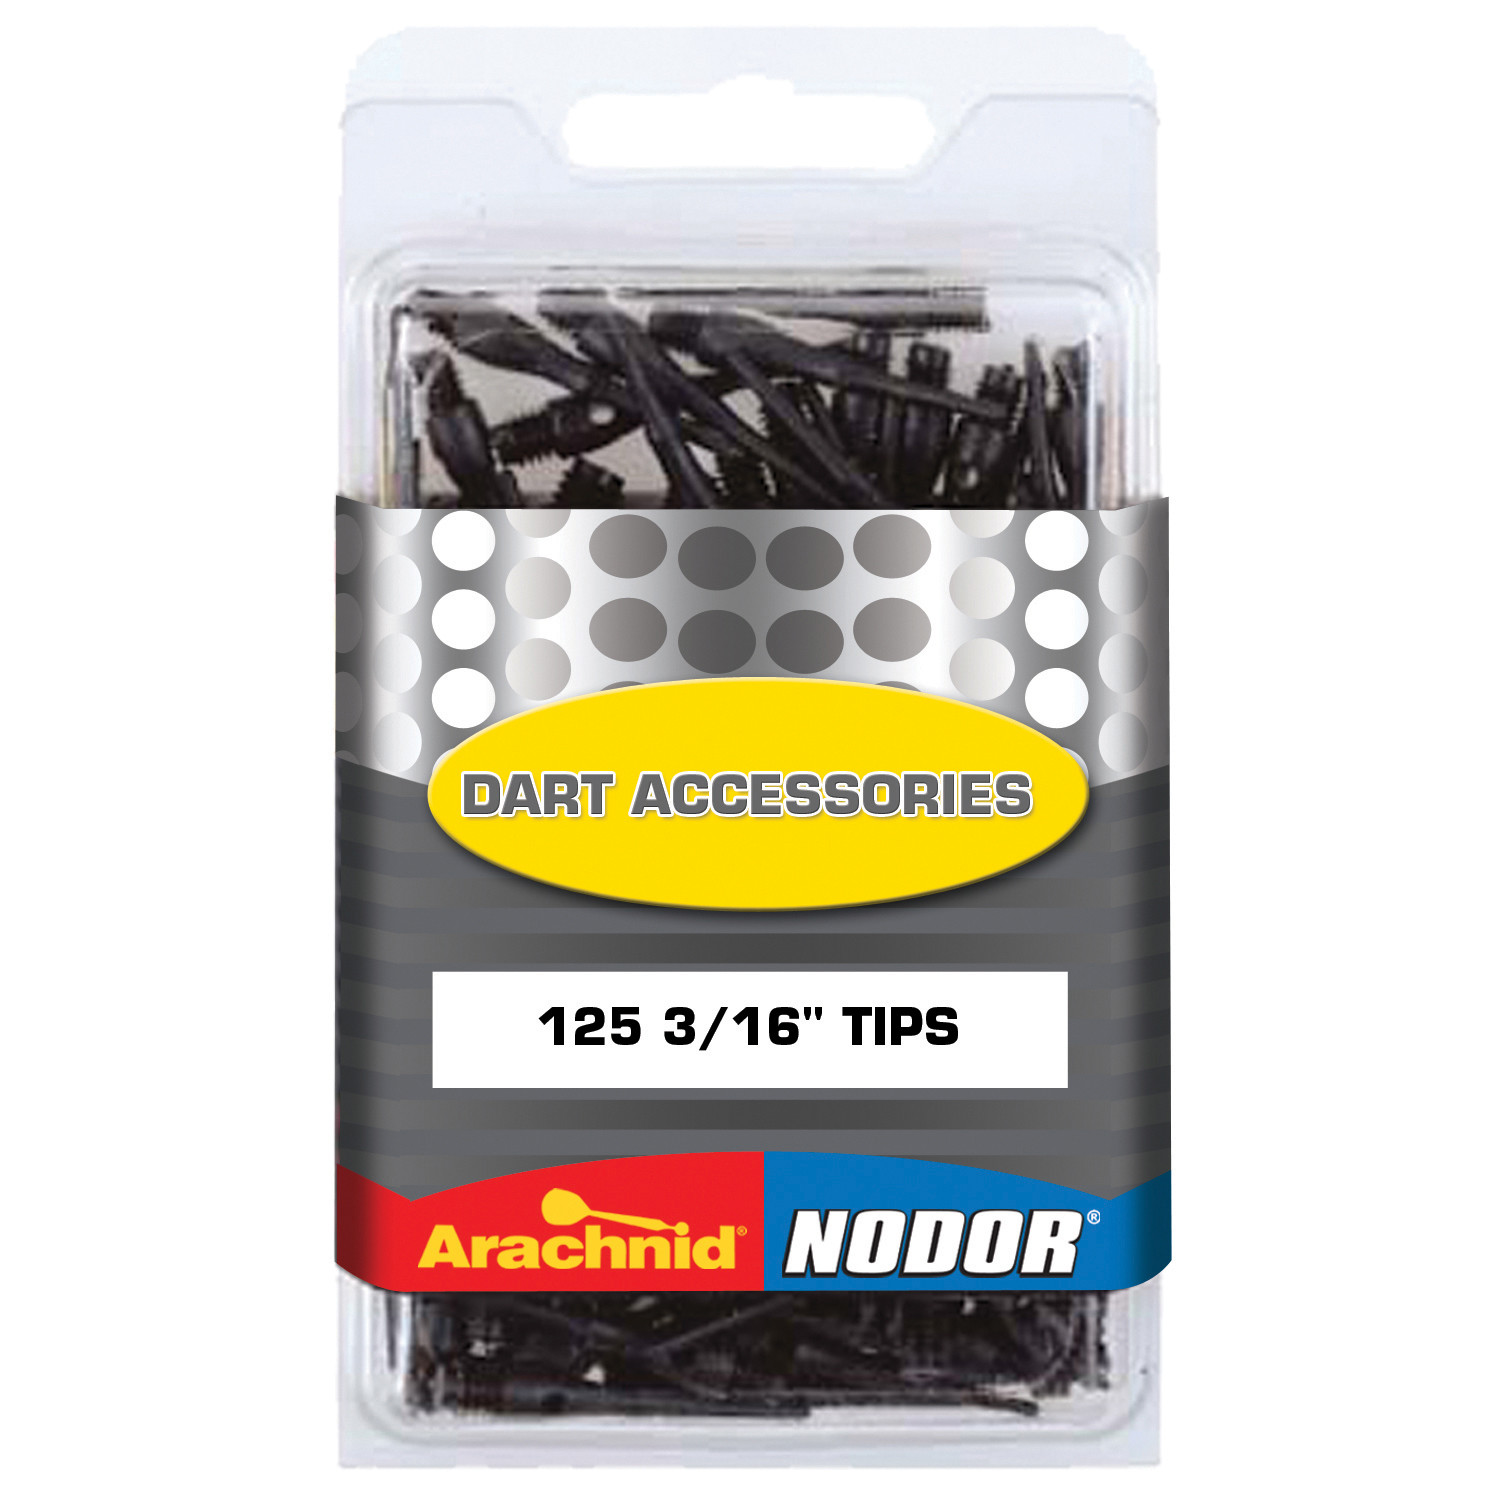 """Arachnid/Nodor Dart Accessories 125 3/16"""" Soft Tips for Use with Electronic Dartboards"""